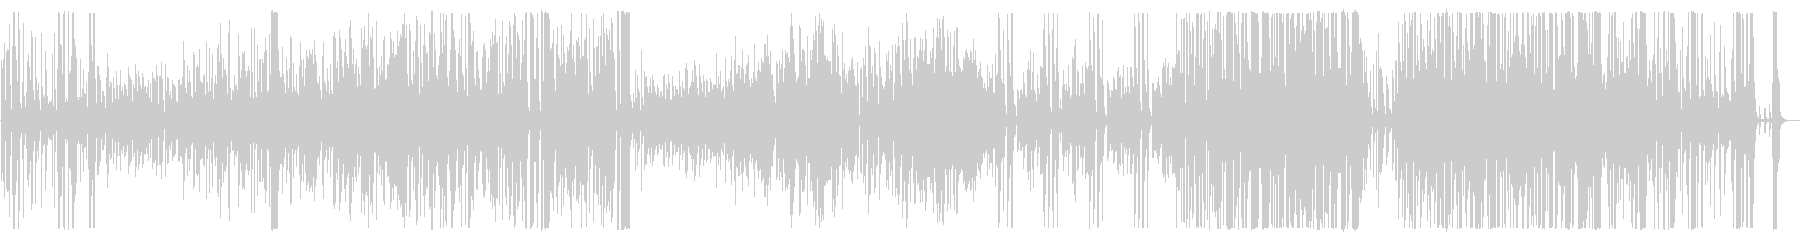 Middle tempo bright big band songs's unreproduced waveform